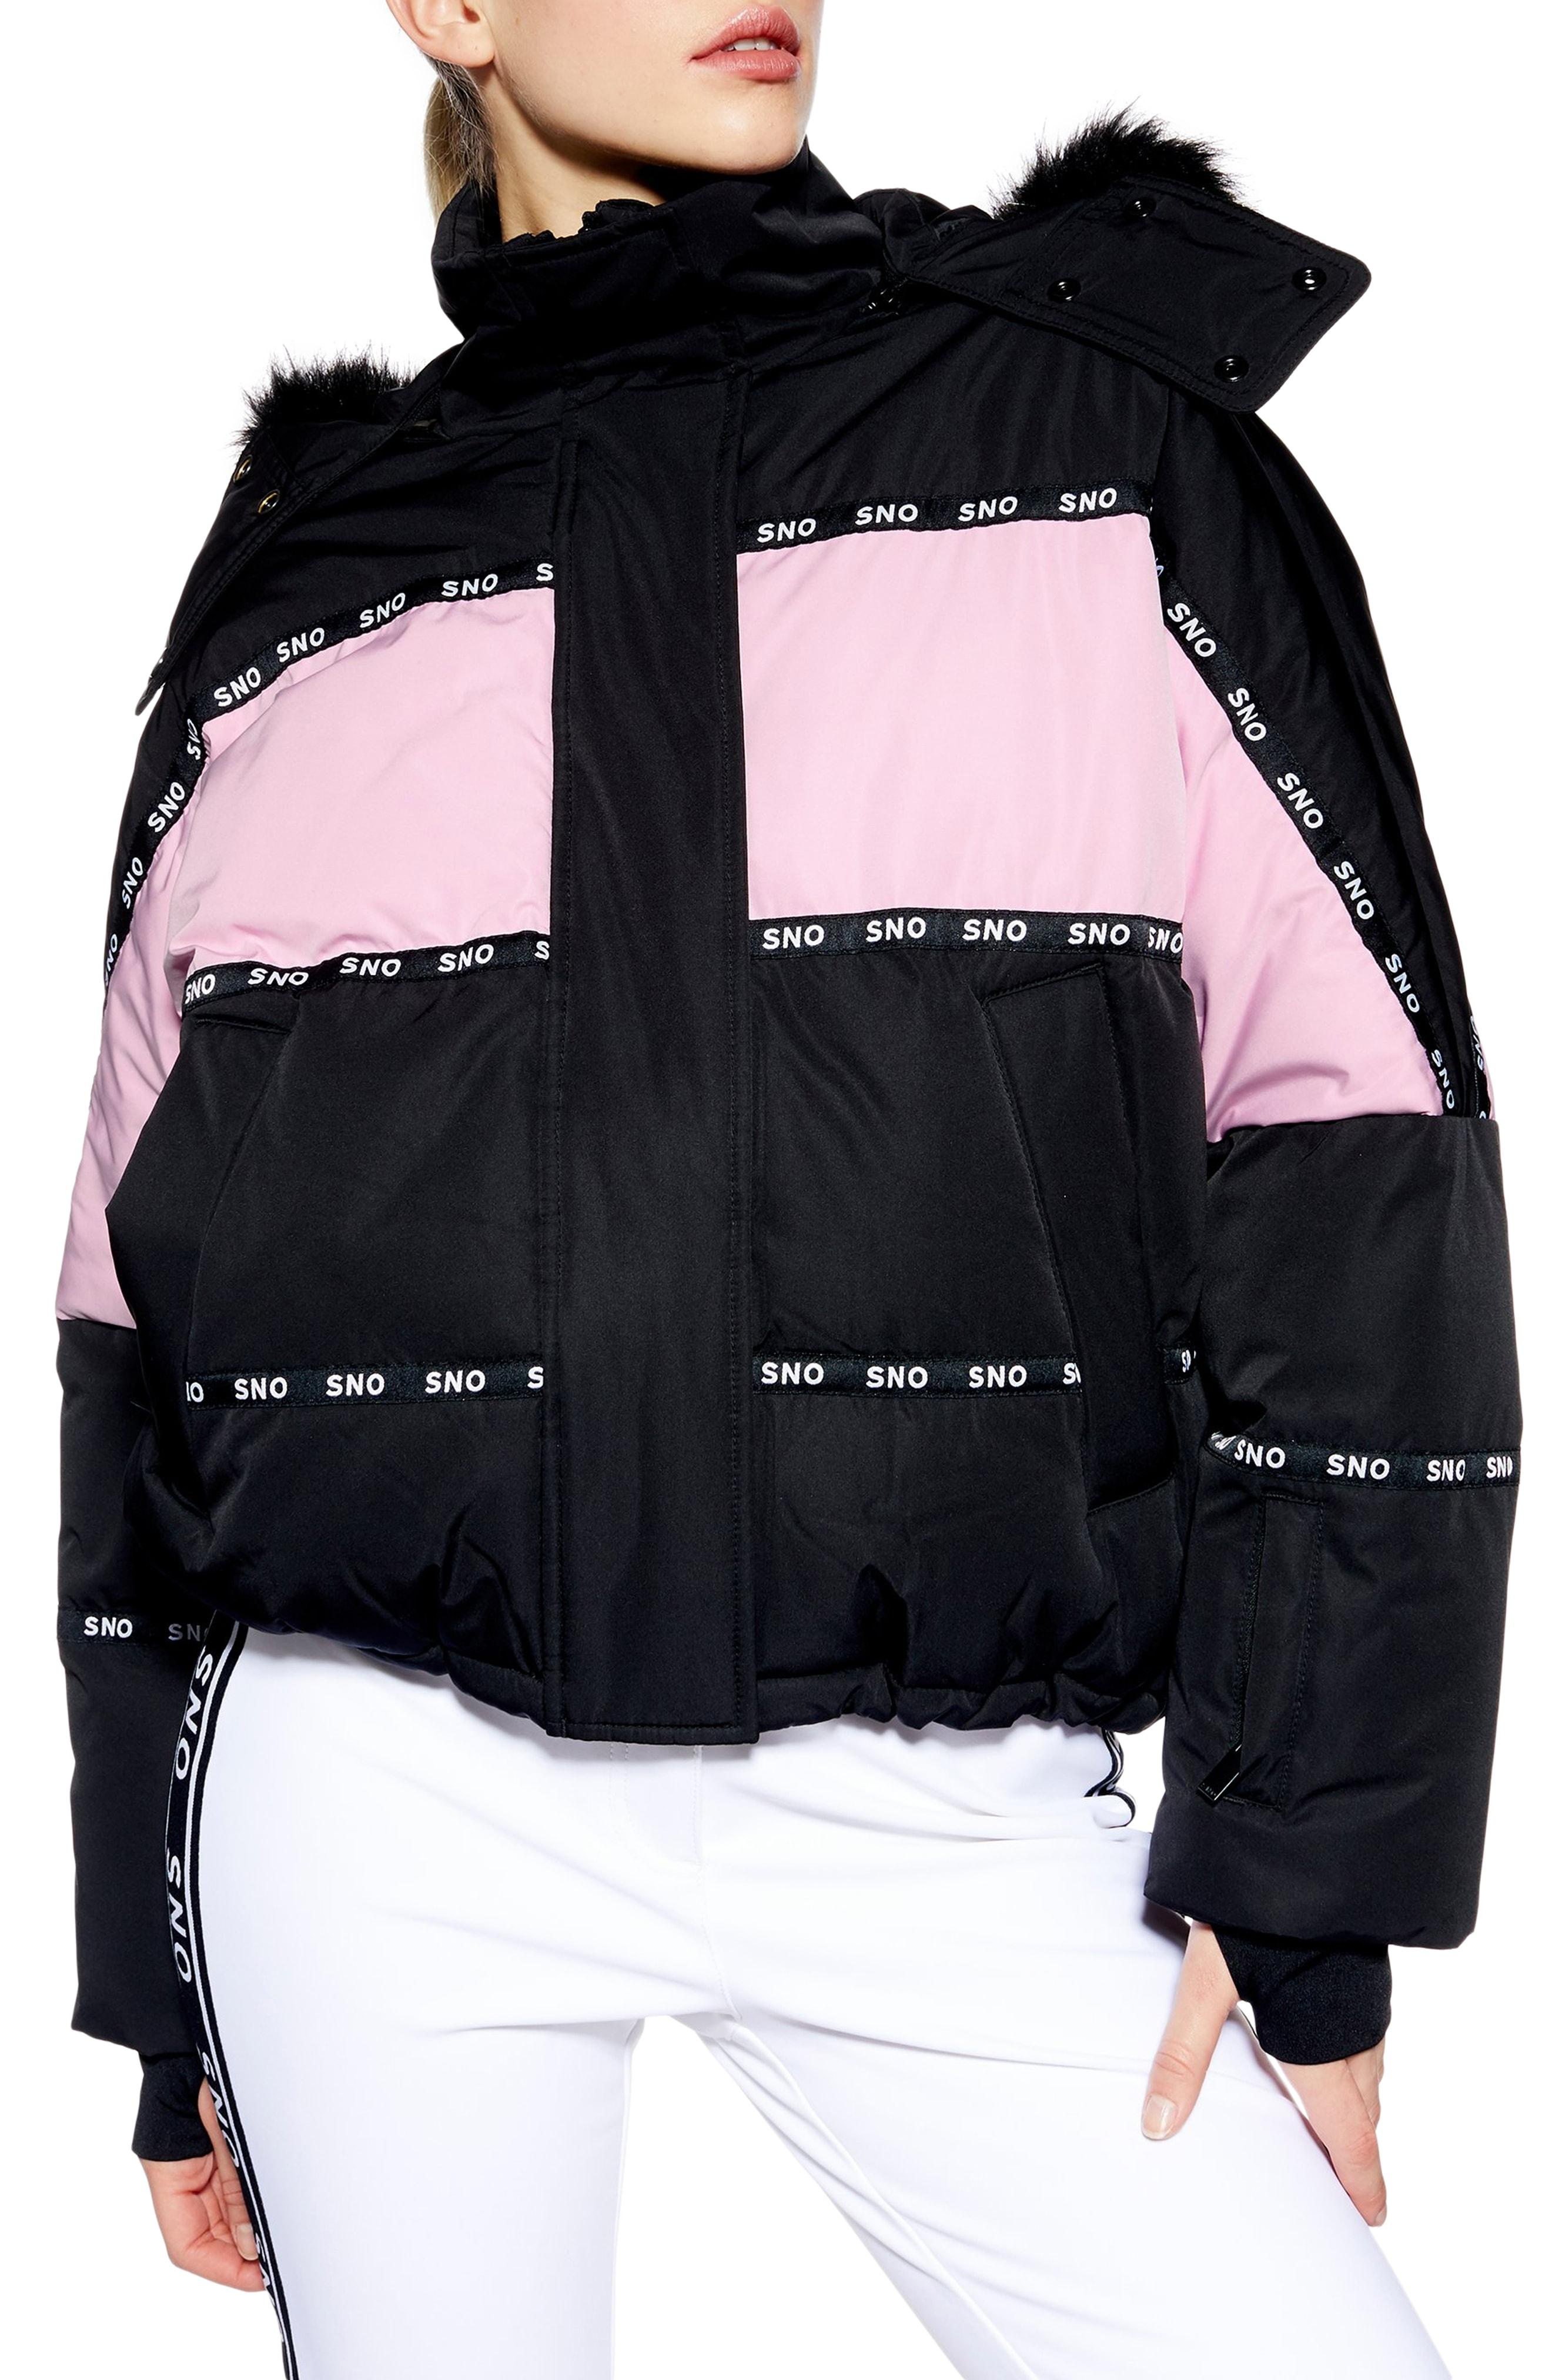 d06095f3c915 Lyst - TOPSHOP Sno Oversized Colorblock Jacket in Black - Save 5%